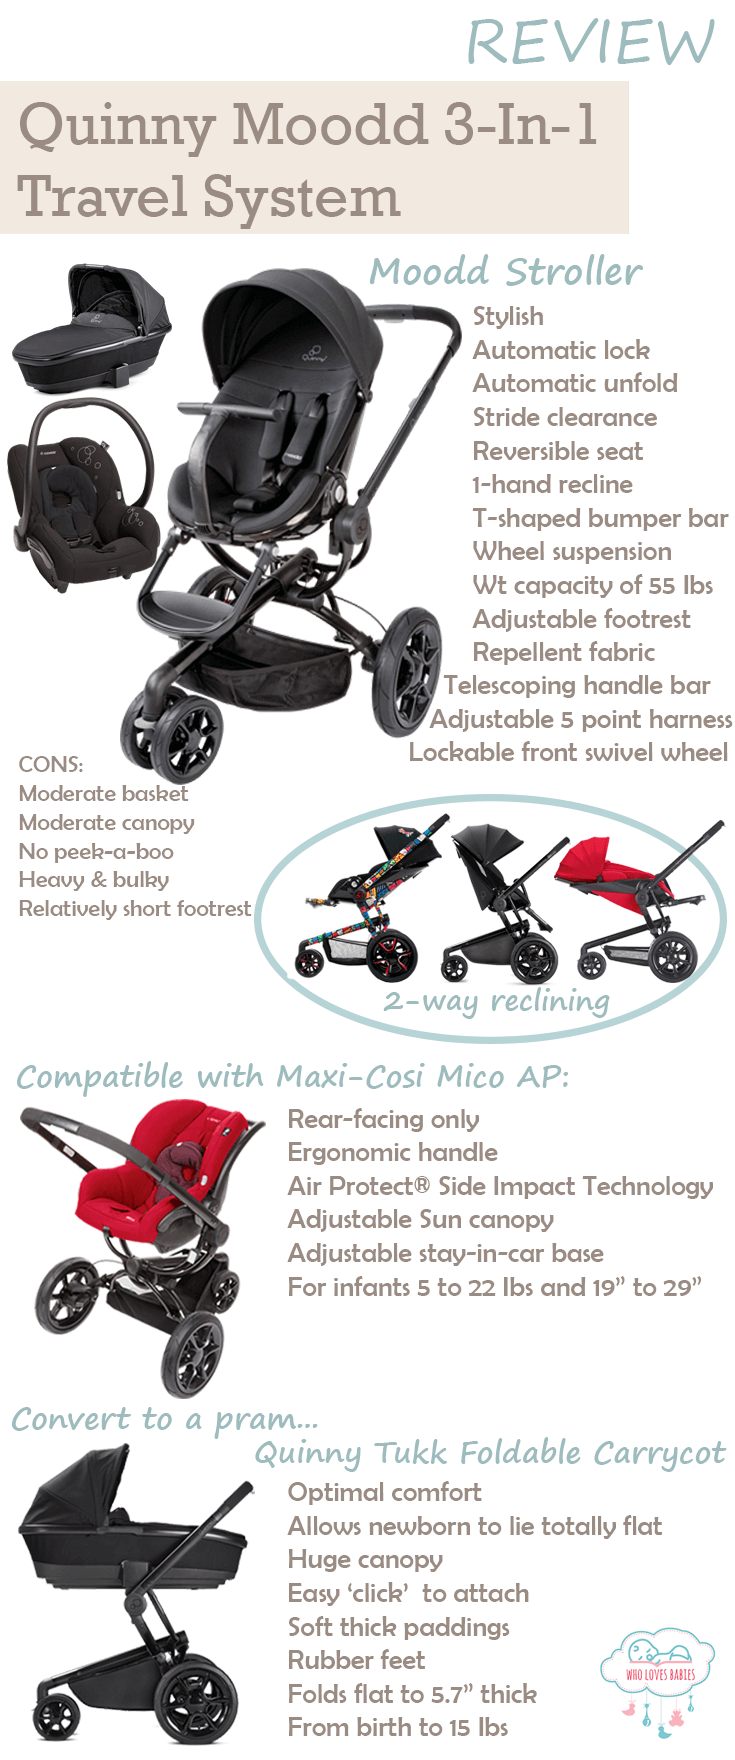 Car Seat Stroller Travel System Reviews Stroll And Travel In Style With Quinny Moodd Travel System